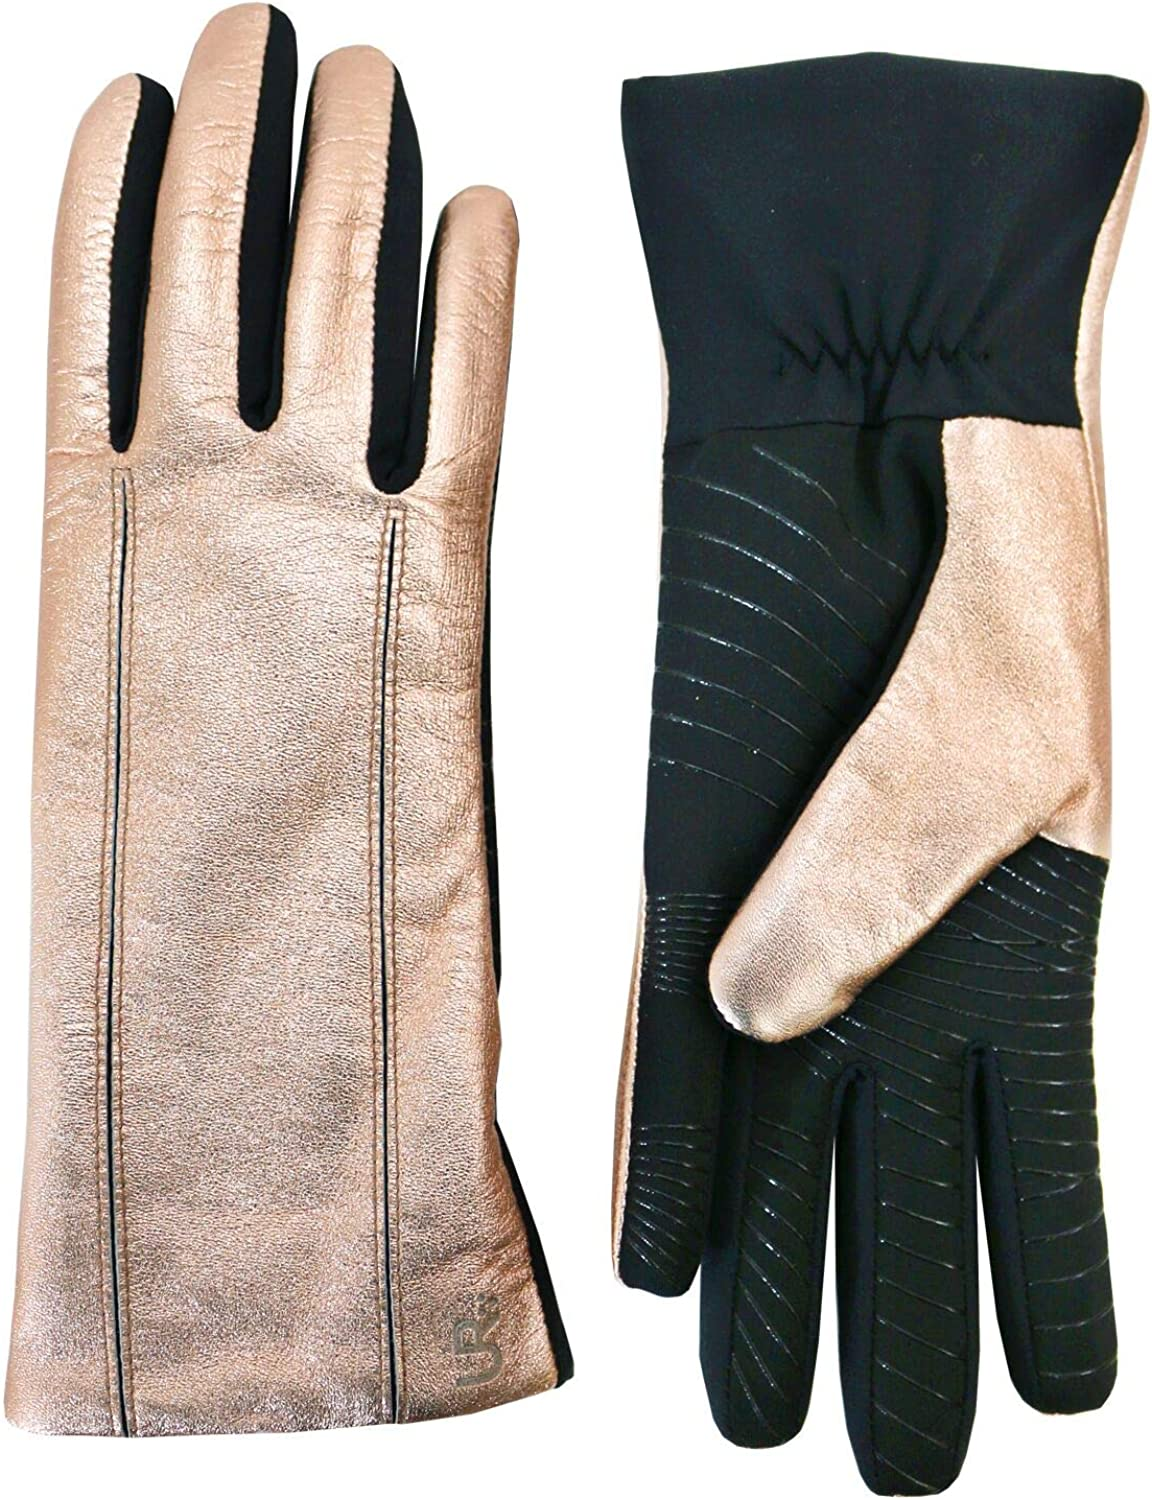 U R Powered Women's Leather & Stretch Touchscreen Gloves, Rose Gold, L/XL